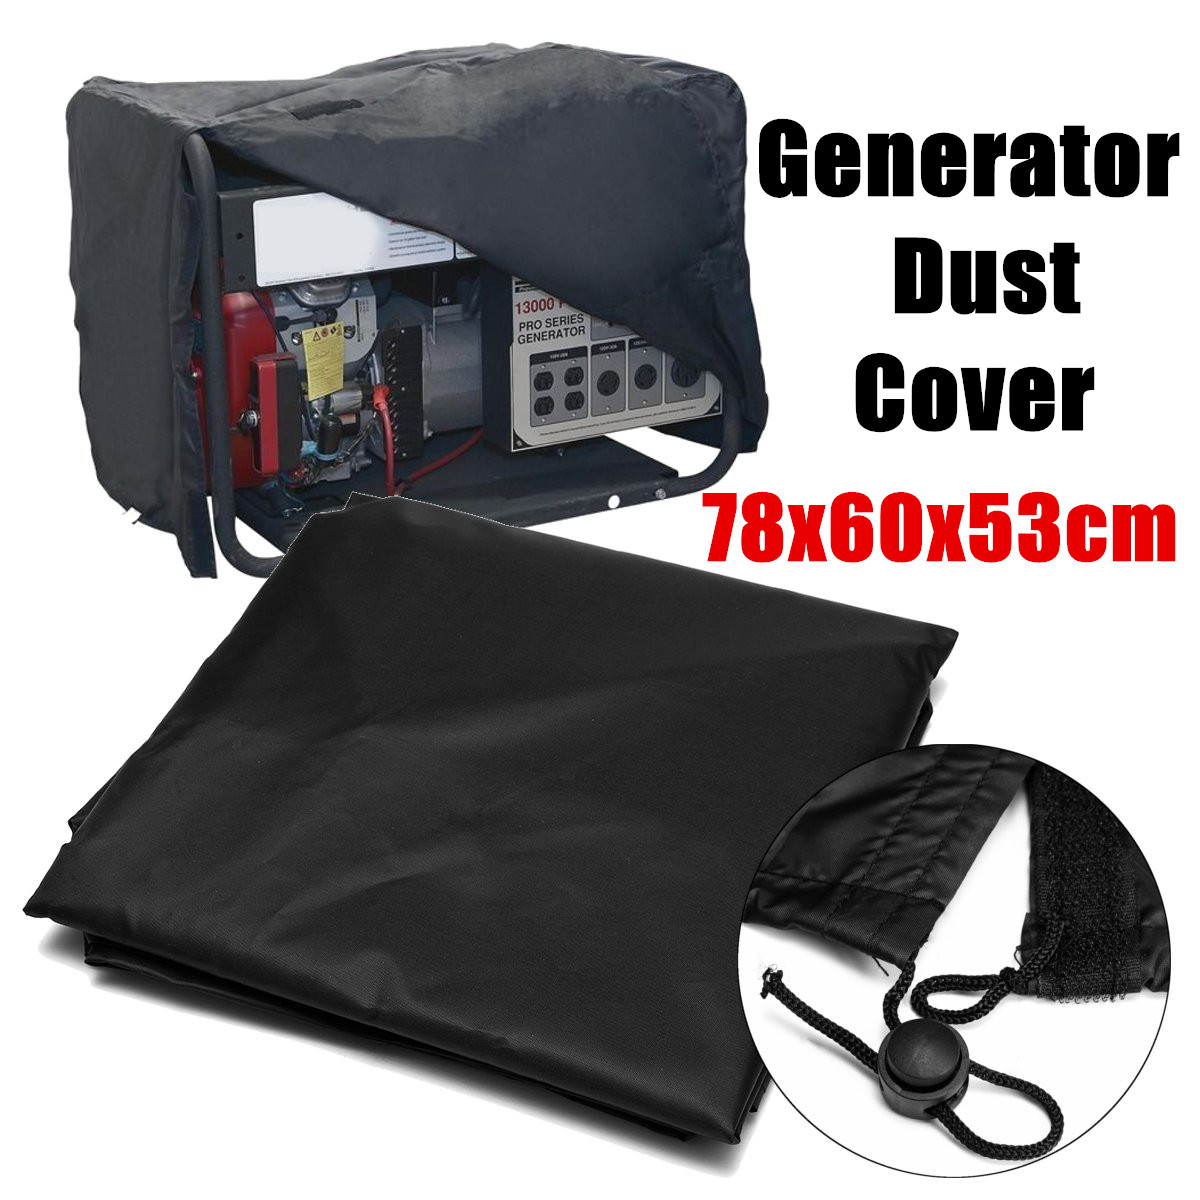 78x60x53cm 210D Generator Waterproof Dust Cover Protection Universal Accessory Oxford Cloth All-Purpose Covers Accessories